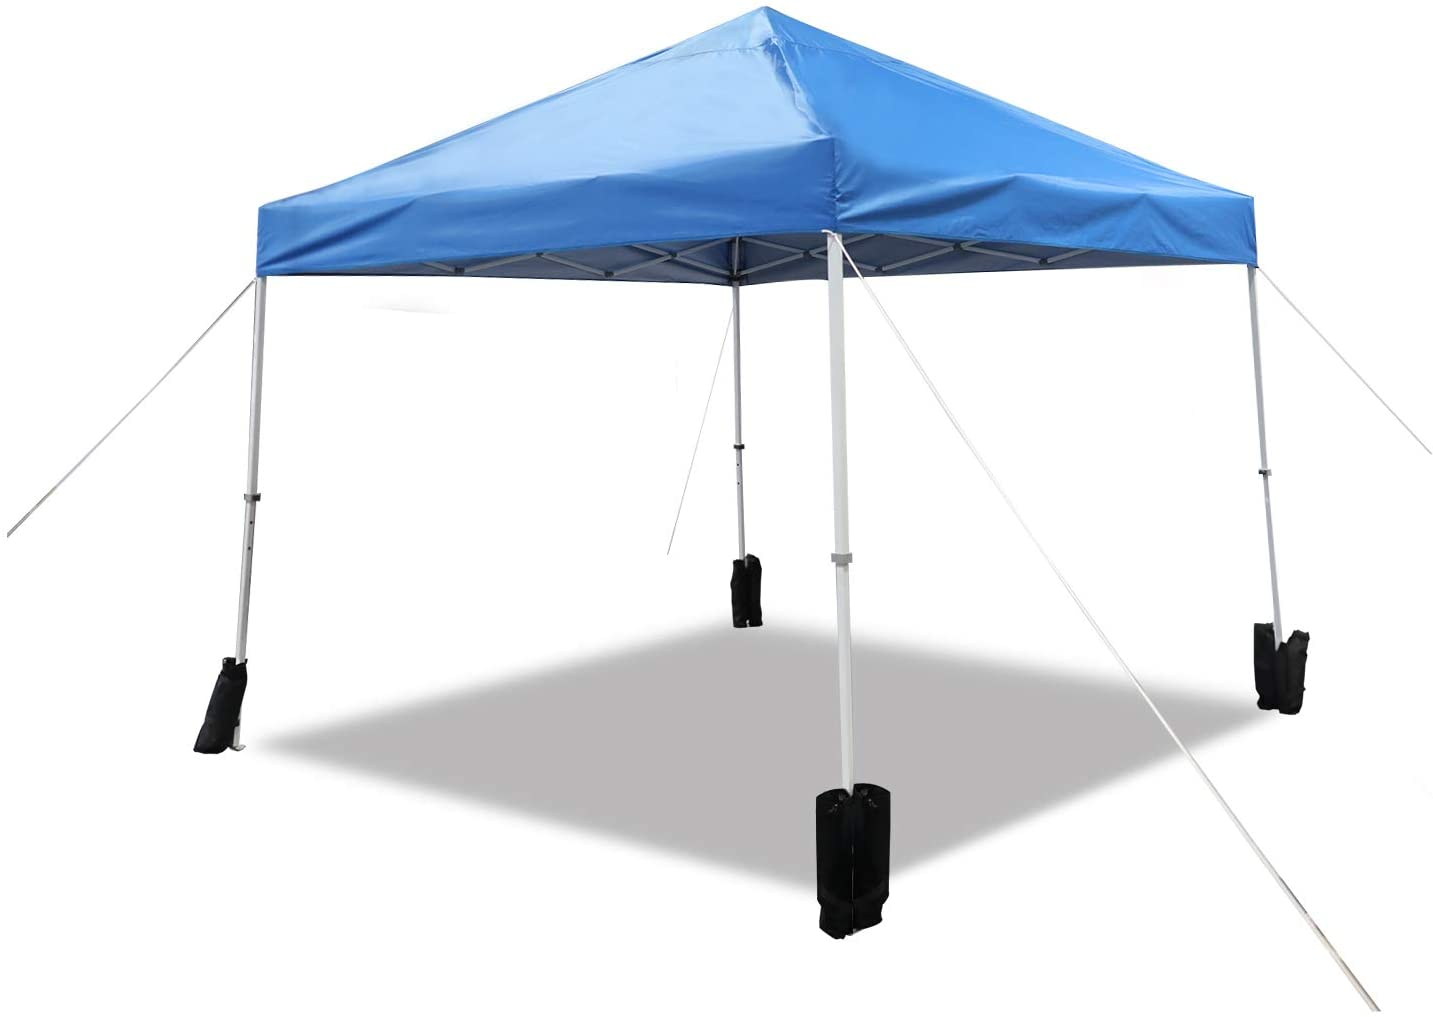 Amazon Basics Outdoor Pop Up Canopy 10ft Wheeled Super beauty product restock quality New life top with Ca x